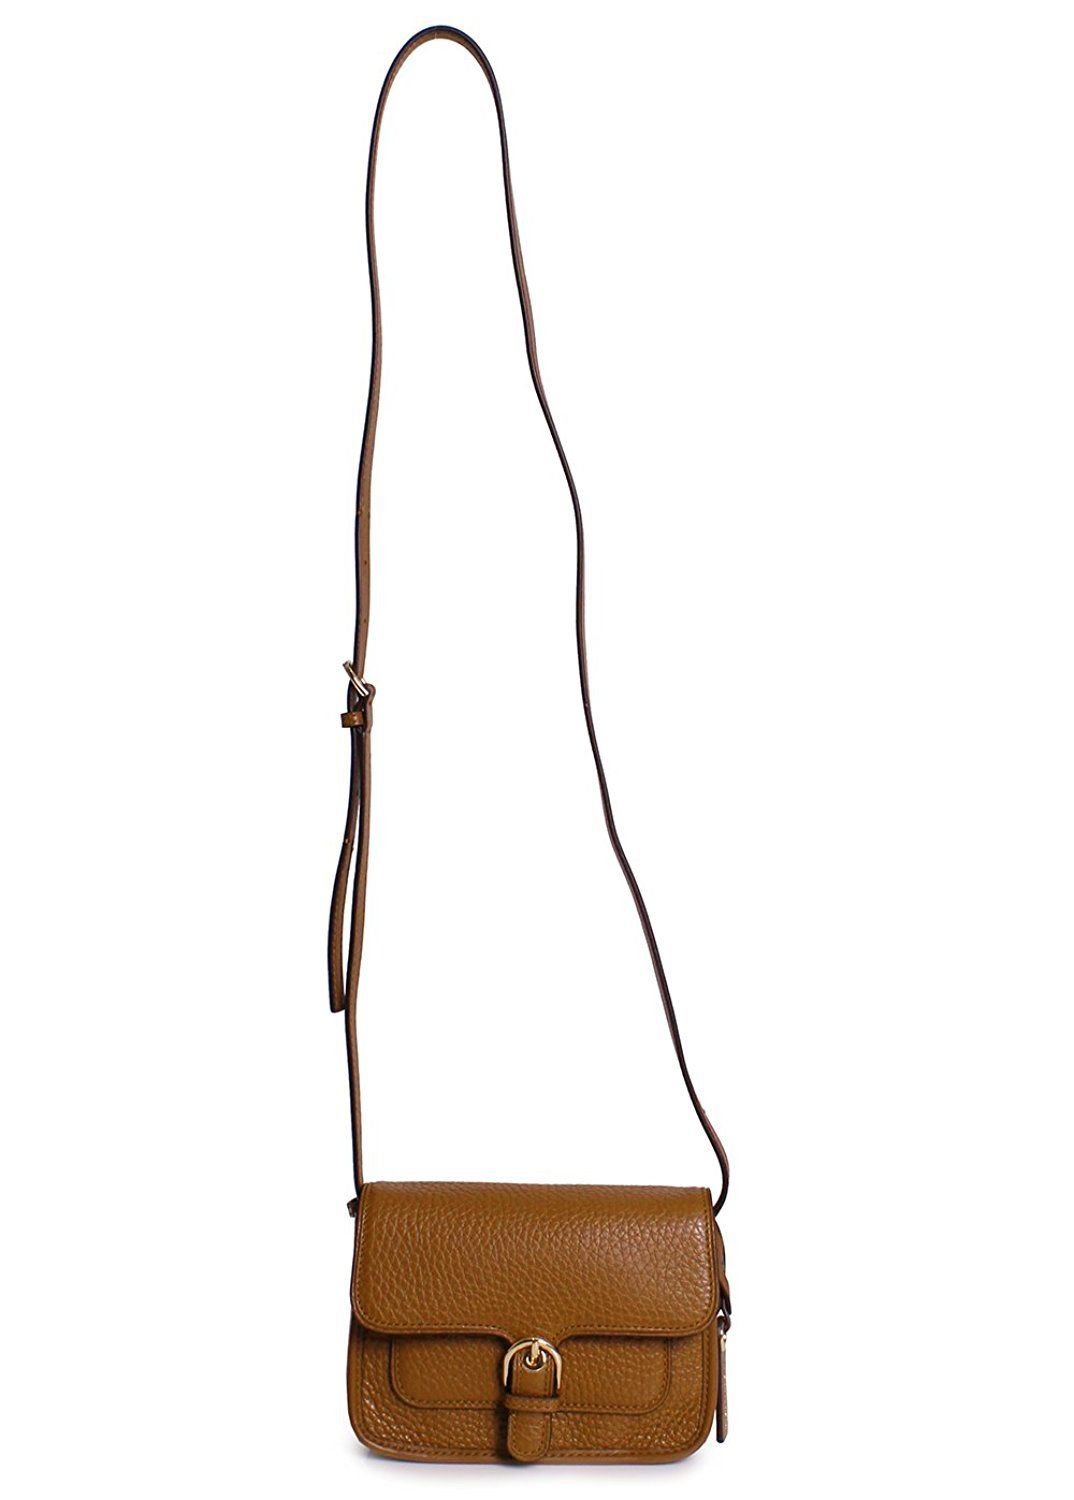 201b6f7fbfb2 Michael Kors Cooper Small Crossbody in Luggage     Thank you for having  viewed our photograph. (This is an affiliate link)  michaelkorshandbags